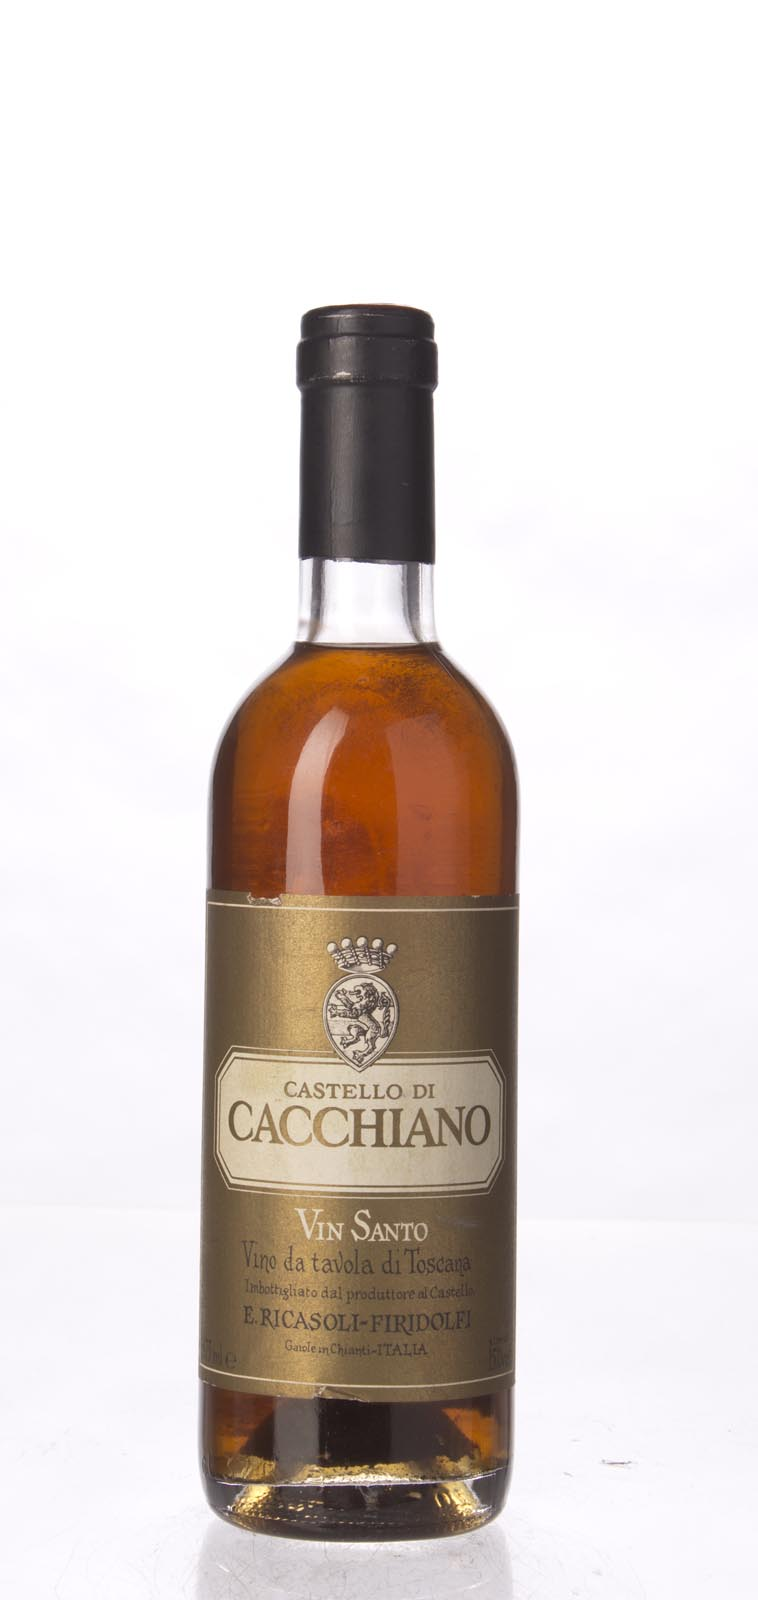 Castello di Cacchiano Vin Santo N.V., 375ml () from The BPW - Merchants of rare and fine wines.